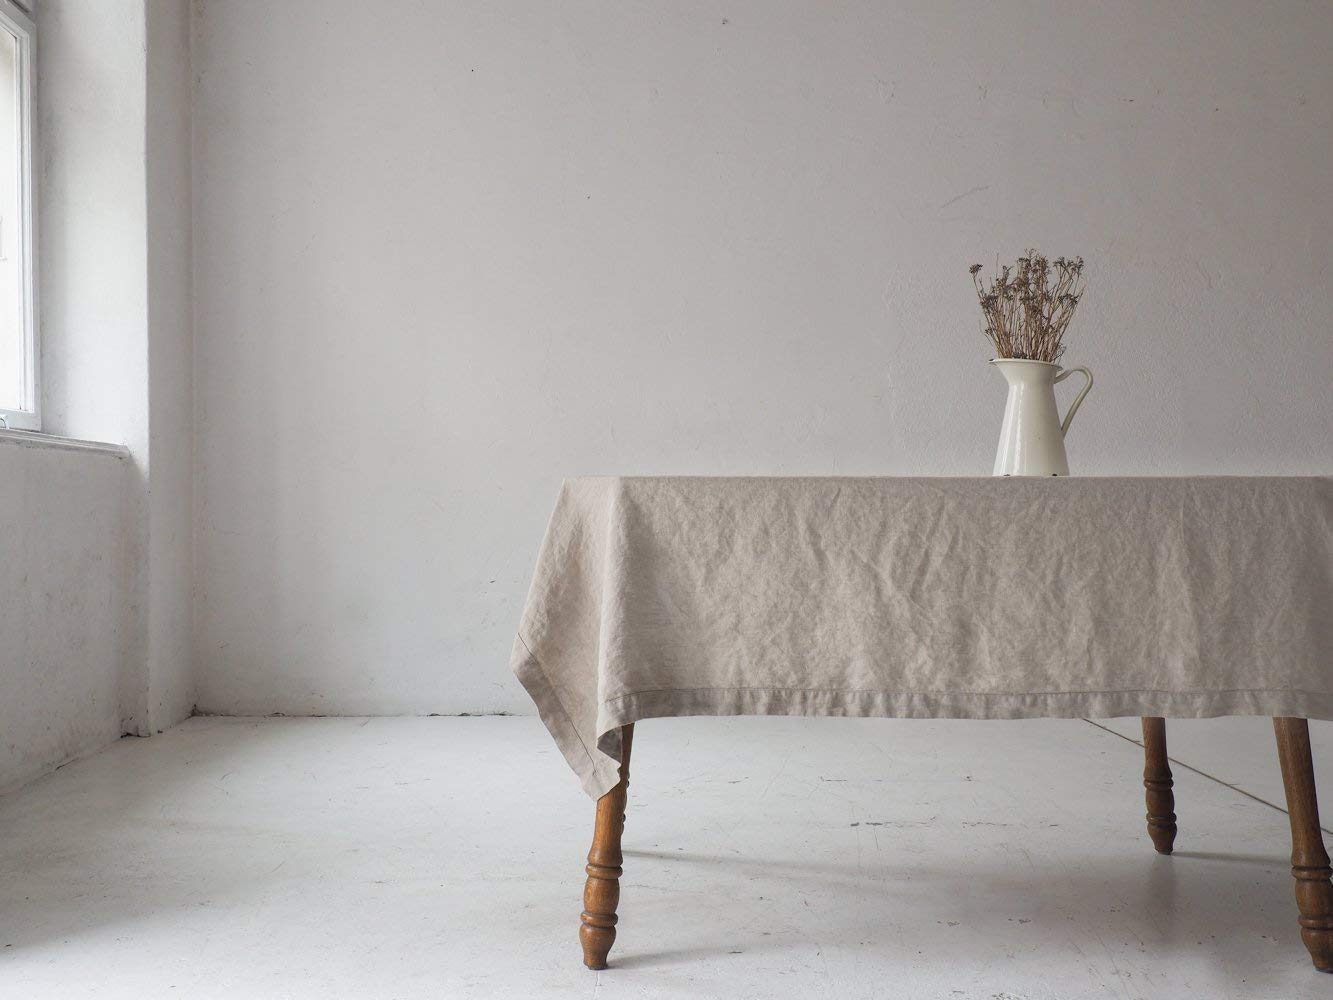 Extra natural linen 100% European linen tablecloth, custom sizes tablecloth, wedding tablecloth, christmas tablecloth, table decoration